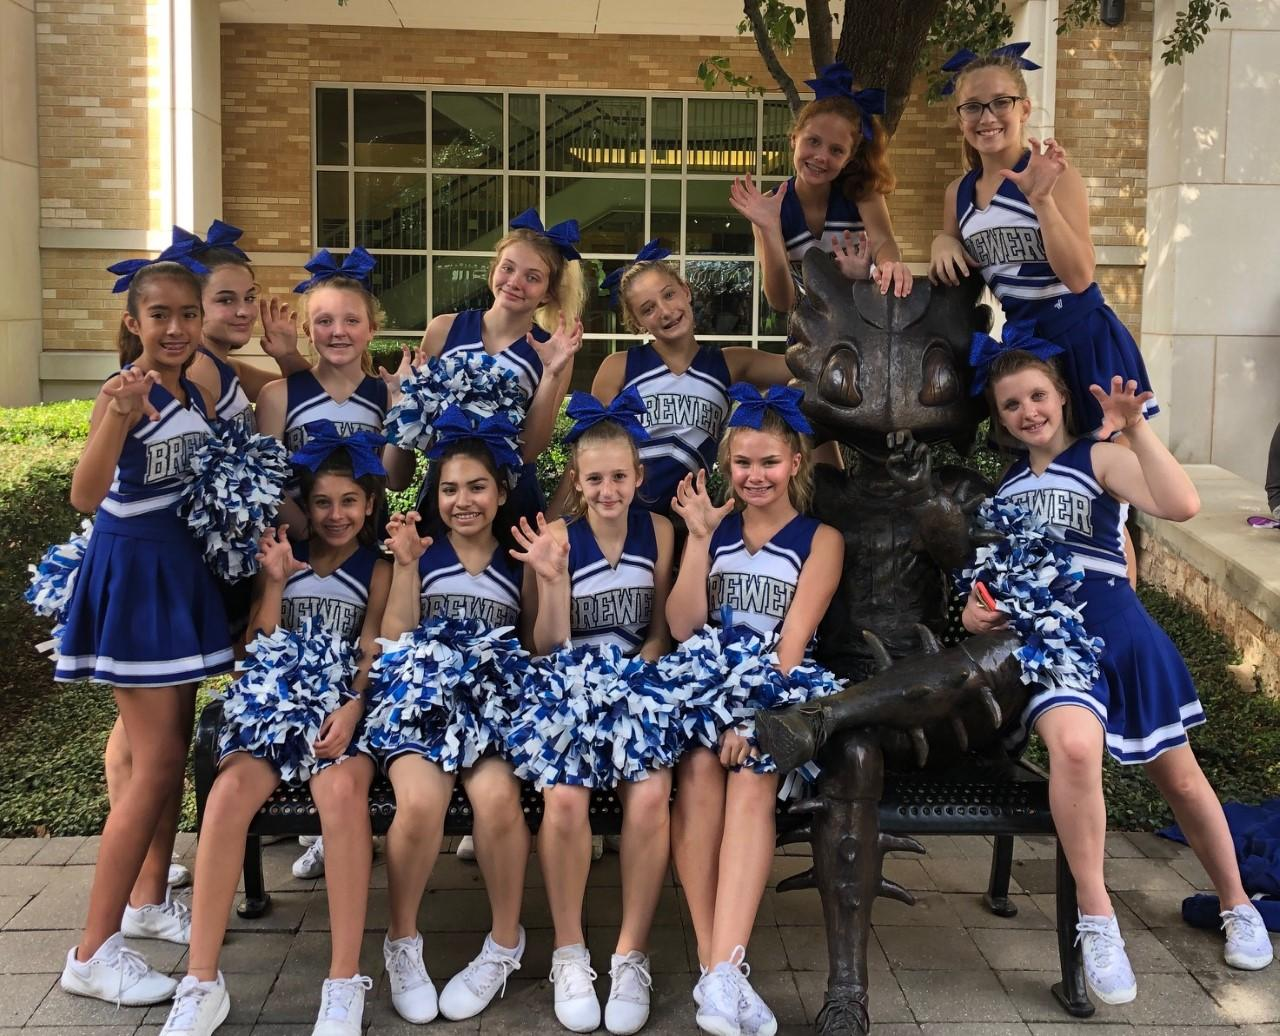 The Brewer Middle School cheerleaders performed during half-time of the TCU football game as part of the TCU Extravaganza yesterday!